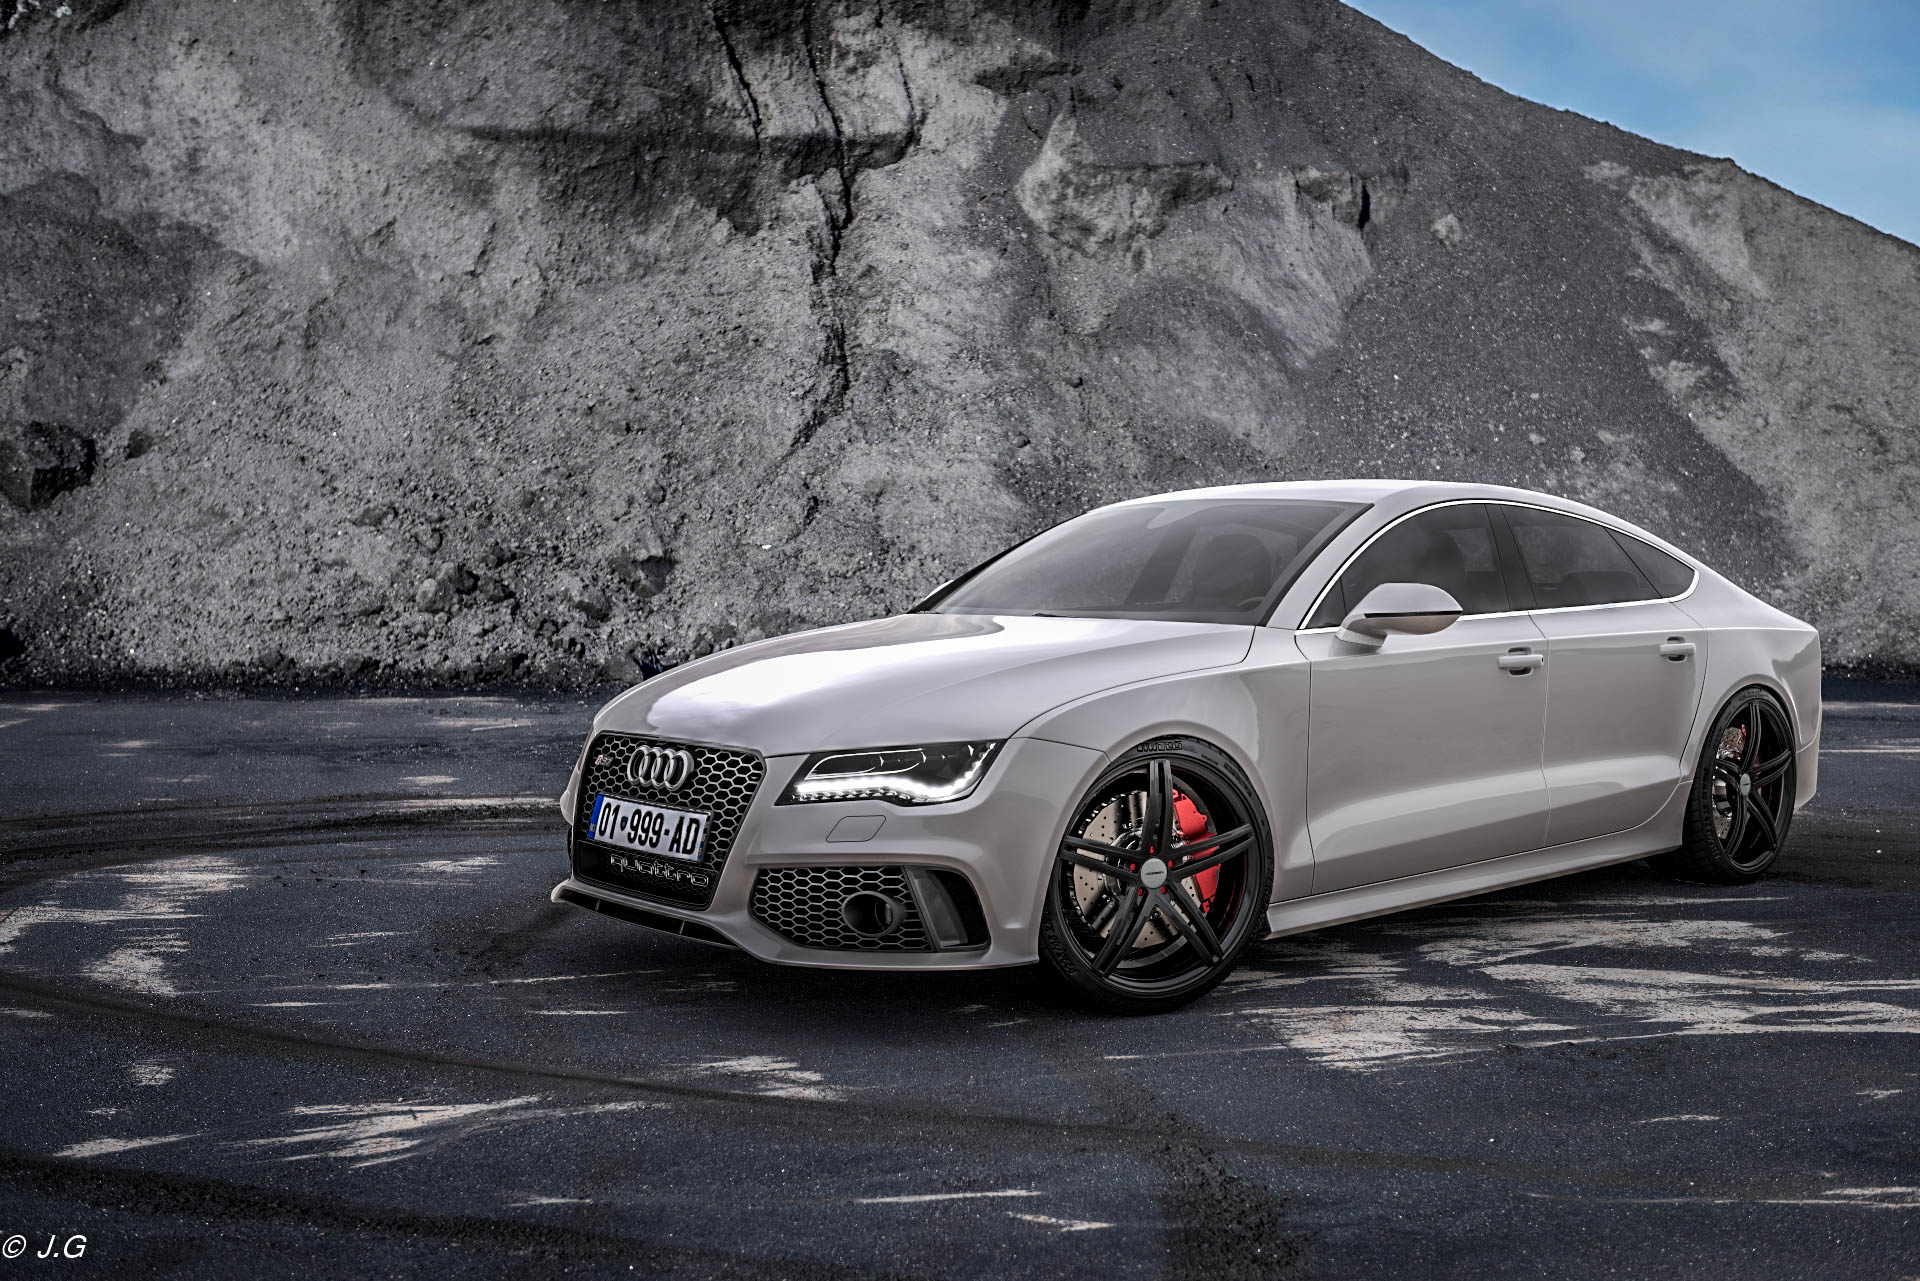 2017 Audi Rs7 Sportback Car Photos Catalog 2018